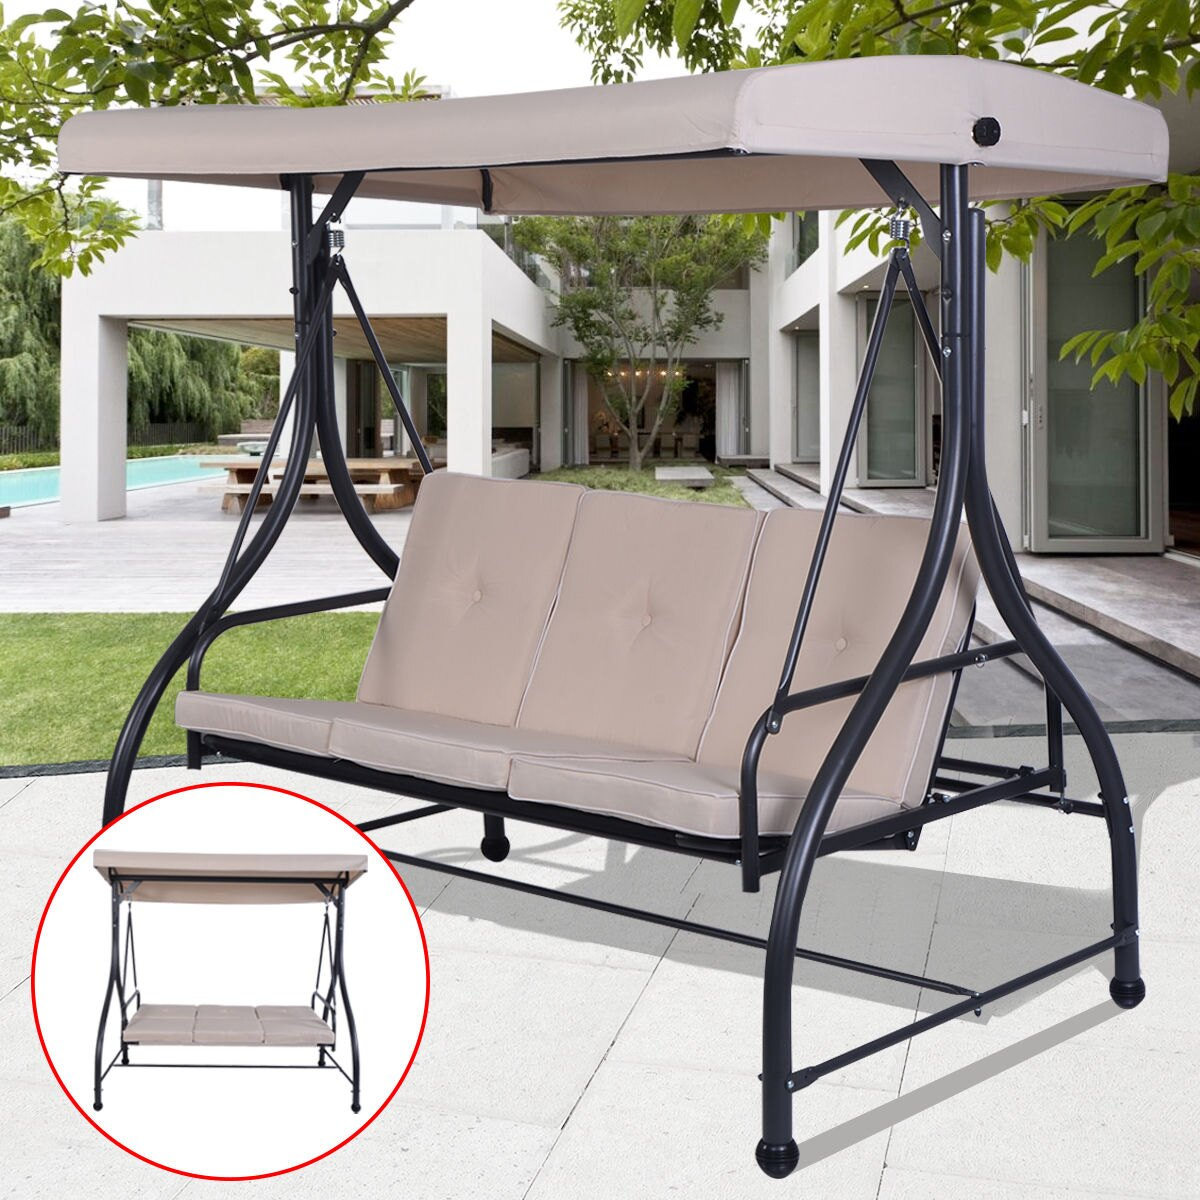 plans deck com outdoor antiquesl chair designs for exterior ikea hammock stand patio